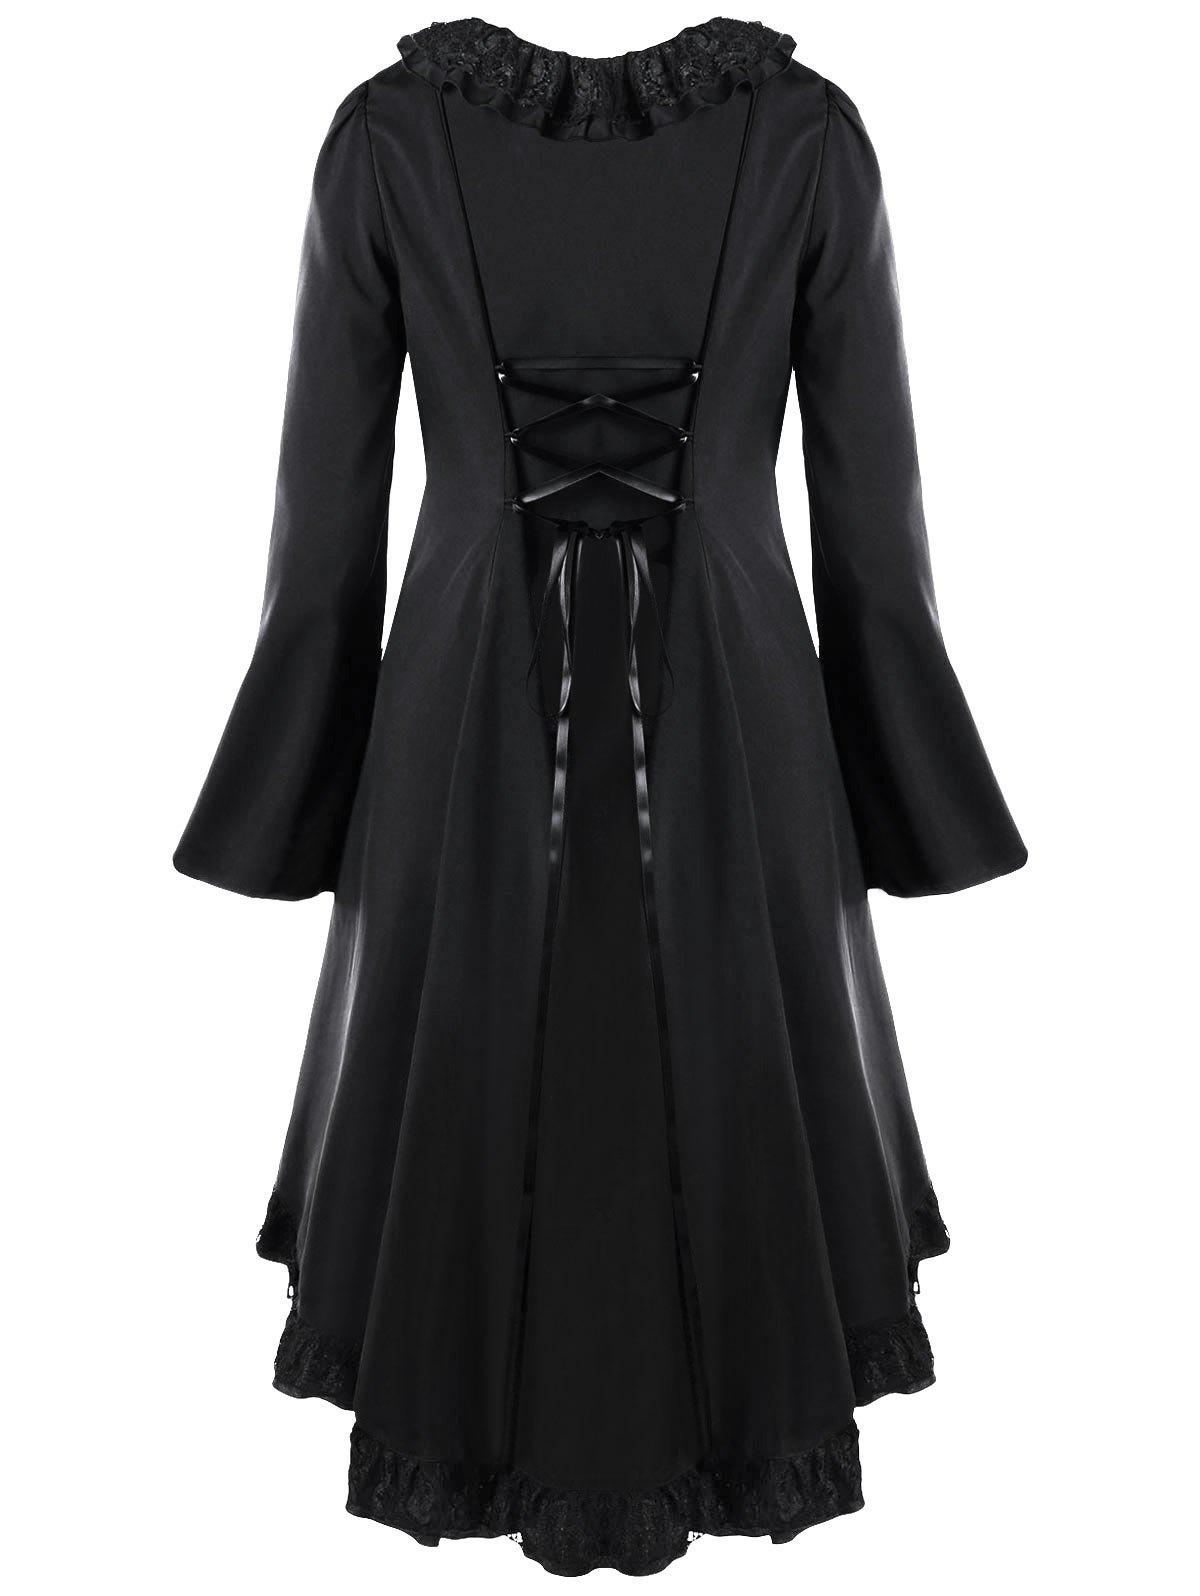 Plus Size Flounce Lace Panel Back Criss Cross High Low  DressWOMEN<br><br>Size: 4XL; Color: BLACK; Style: Casual; Material: Polyester,Spandex; Silhouette: Asymmetrical; Dresses Length: Mid-Calf; Neckline: V-Neck; Sleeve Type: Flare Sleeve; Sleeve Length: Long Sleeves; Embellishment: Button,Criss-Cross,Flounce,Lace,Panel; Pattern Type: Others; With Belt: No; Season: Fall,Spring,Winter; Weight: 0.4000kg; Package Contents: 1 x Dress;